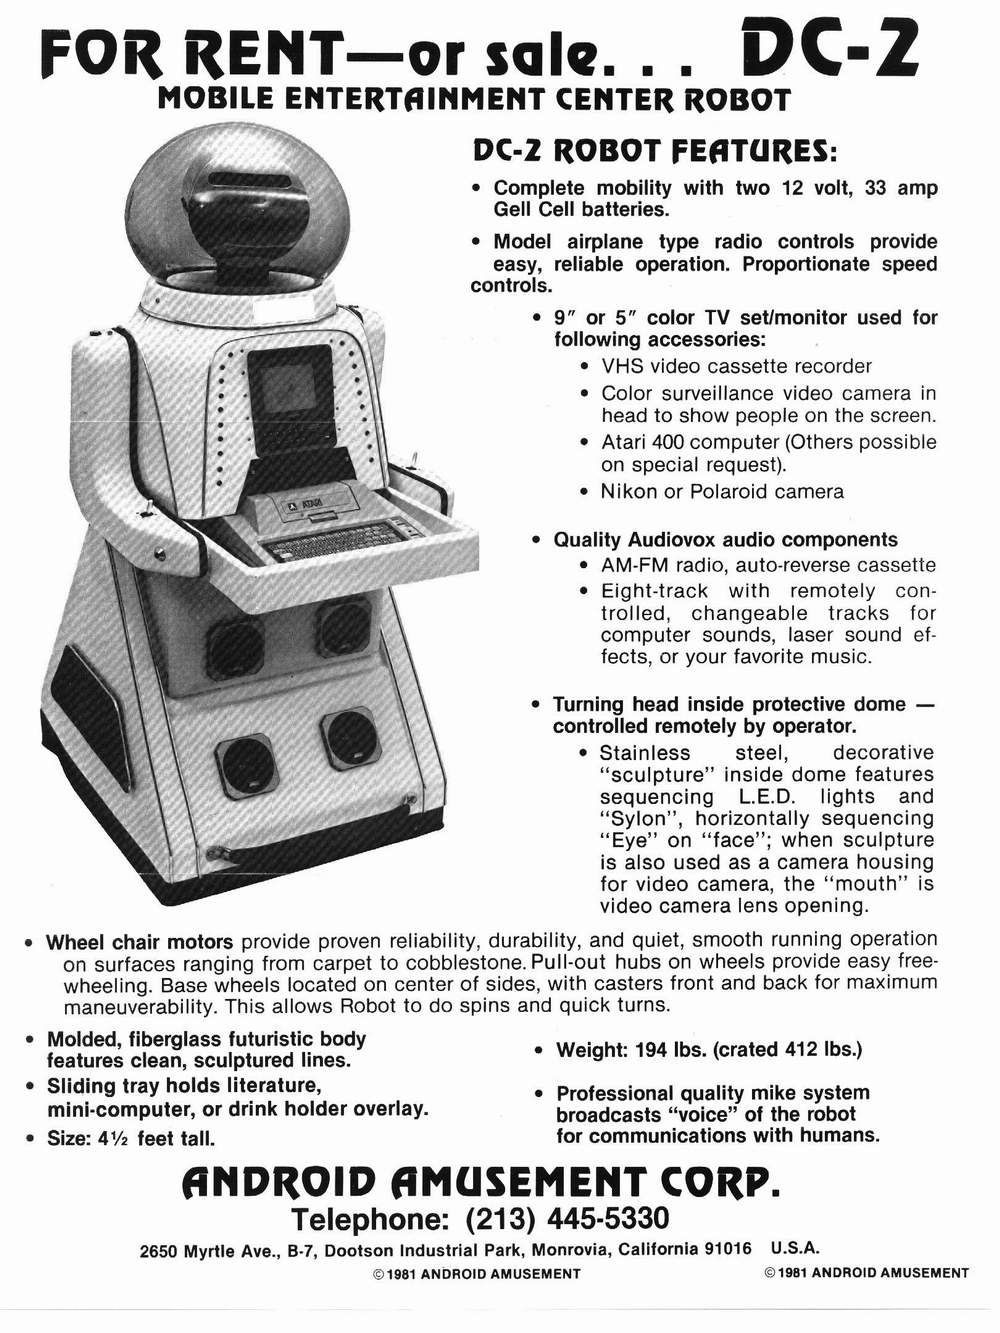 DC-2 Robot by Android Amusement - The Old Robot's Web Site